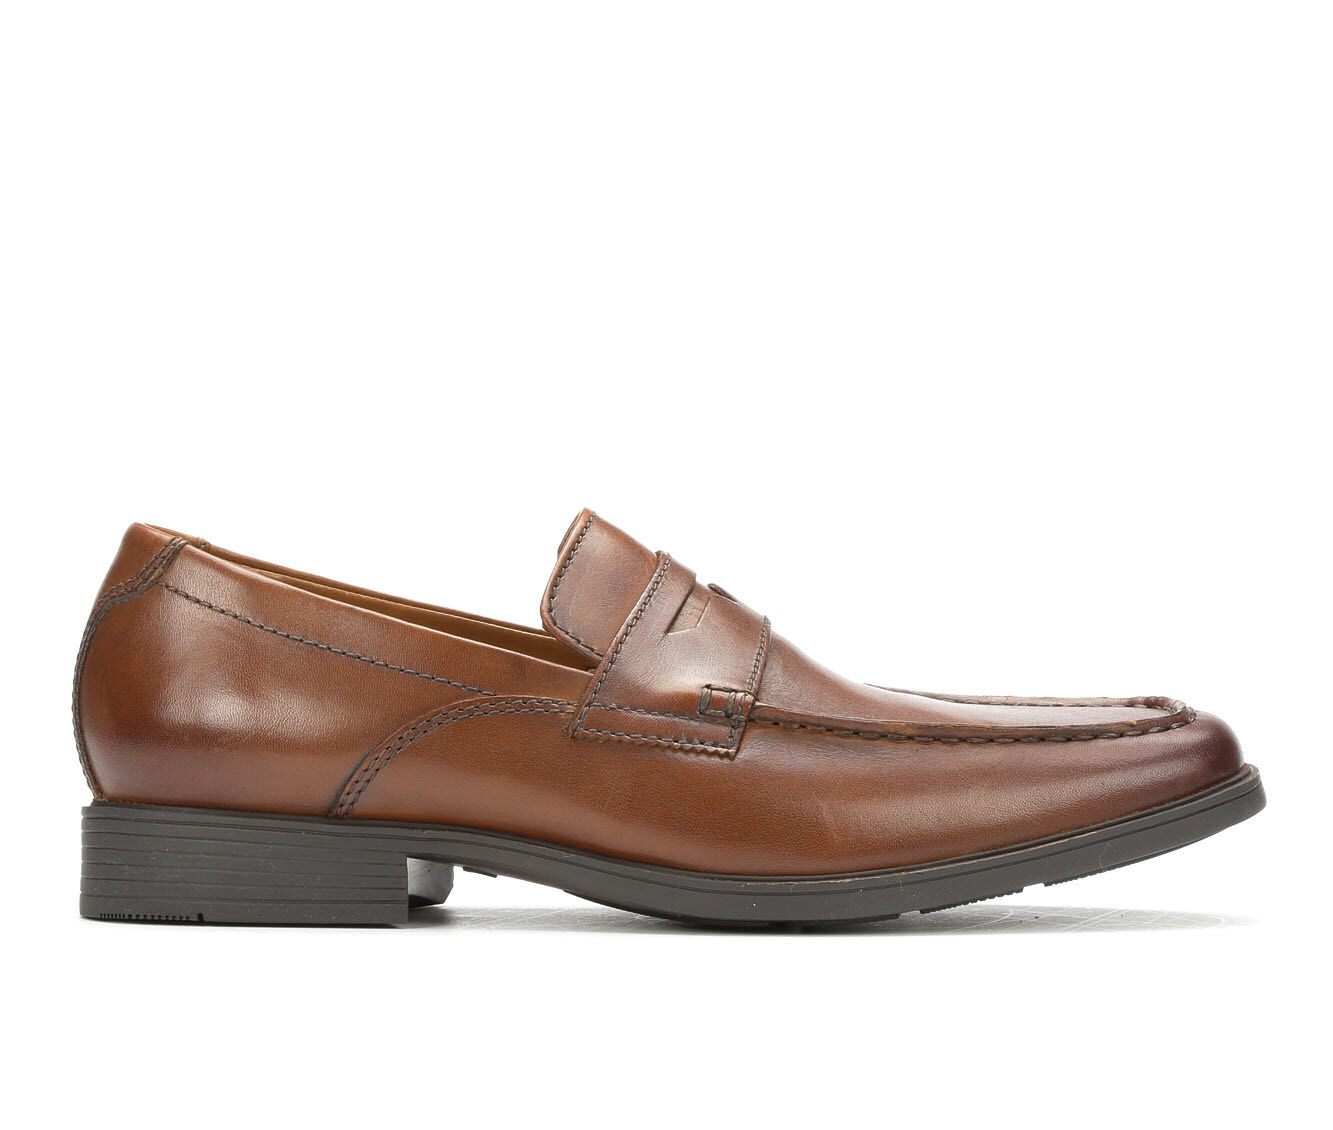 Men's Clarks Tilden Way Slip On Penny Loafers Brown